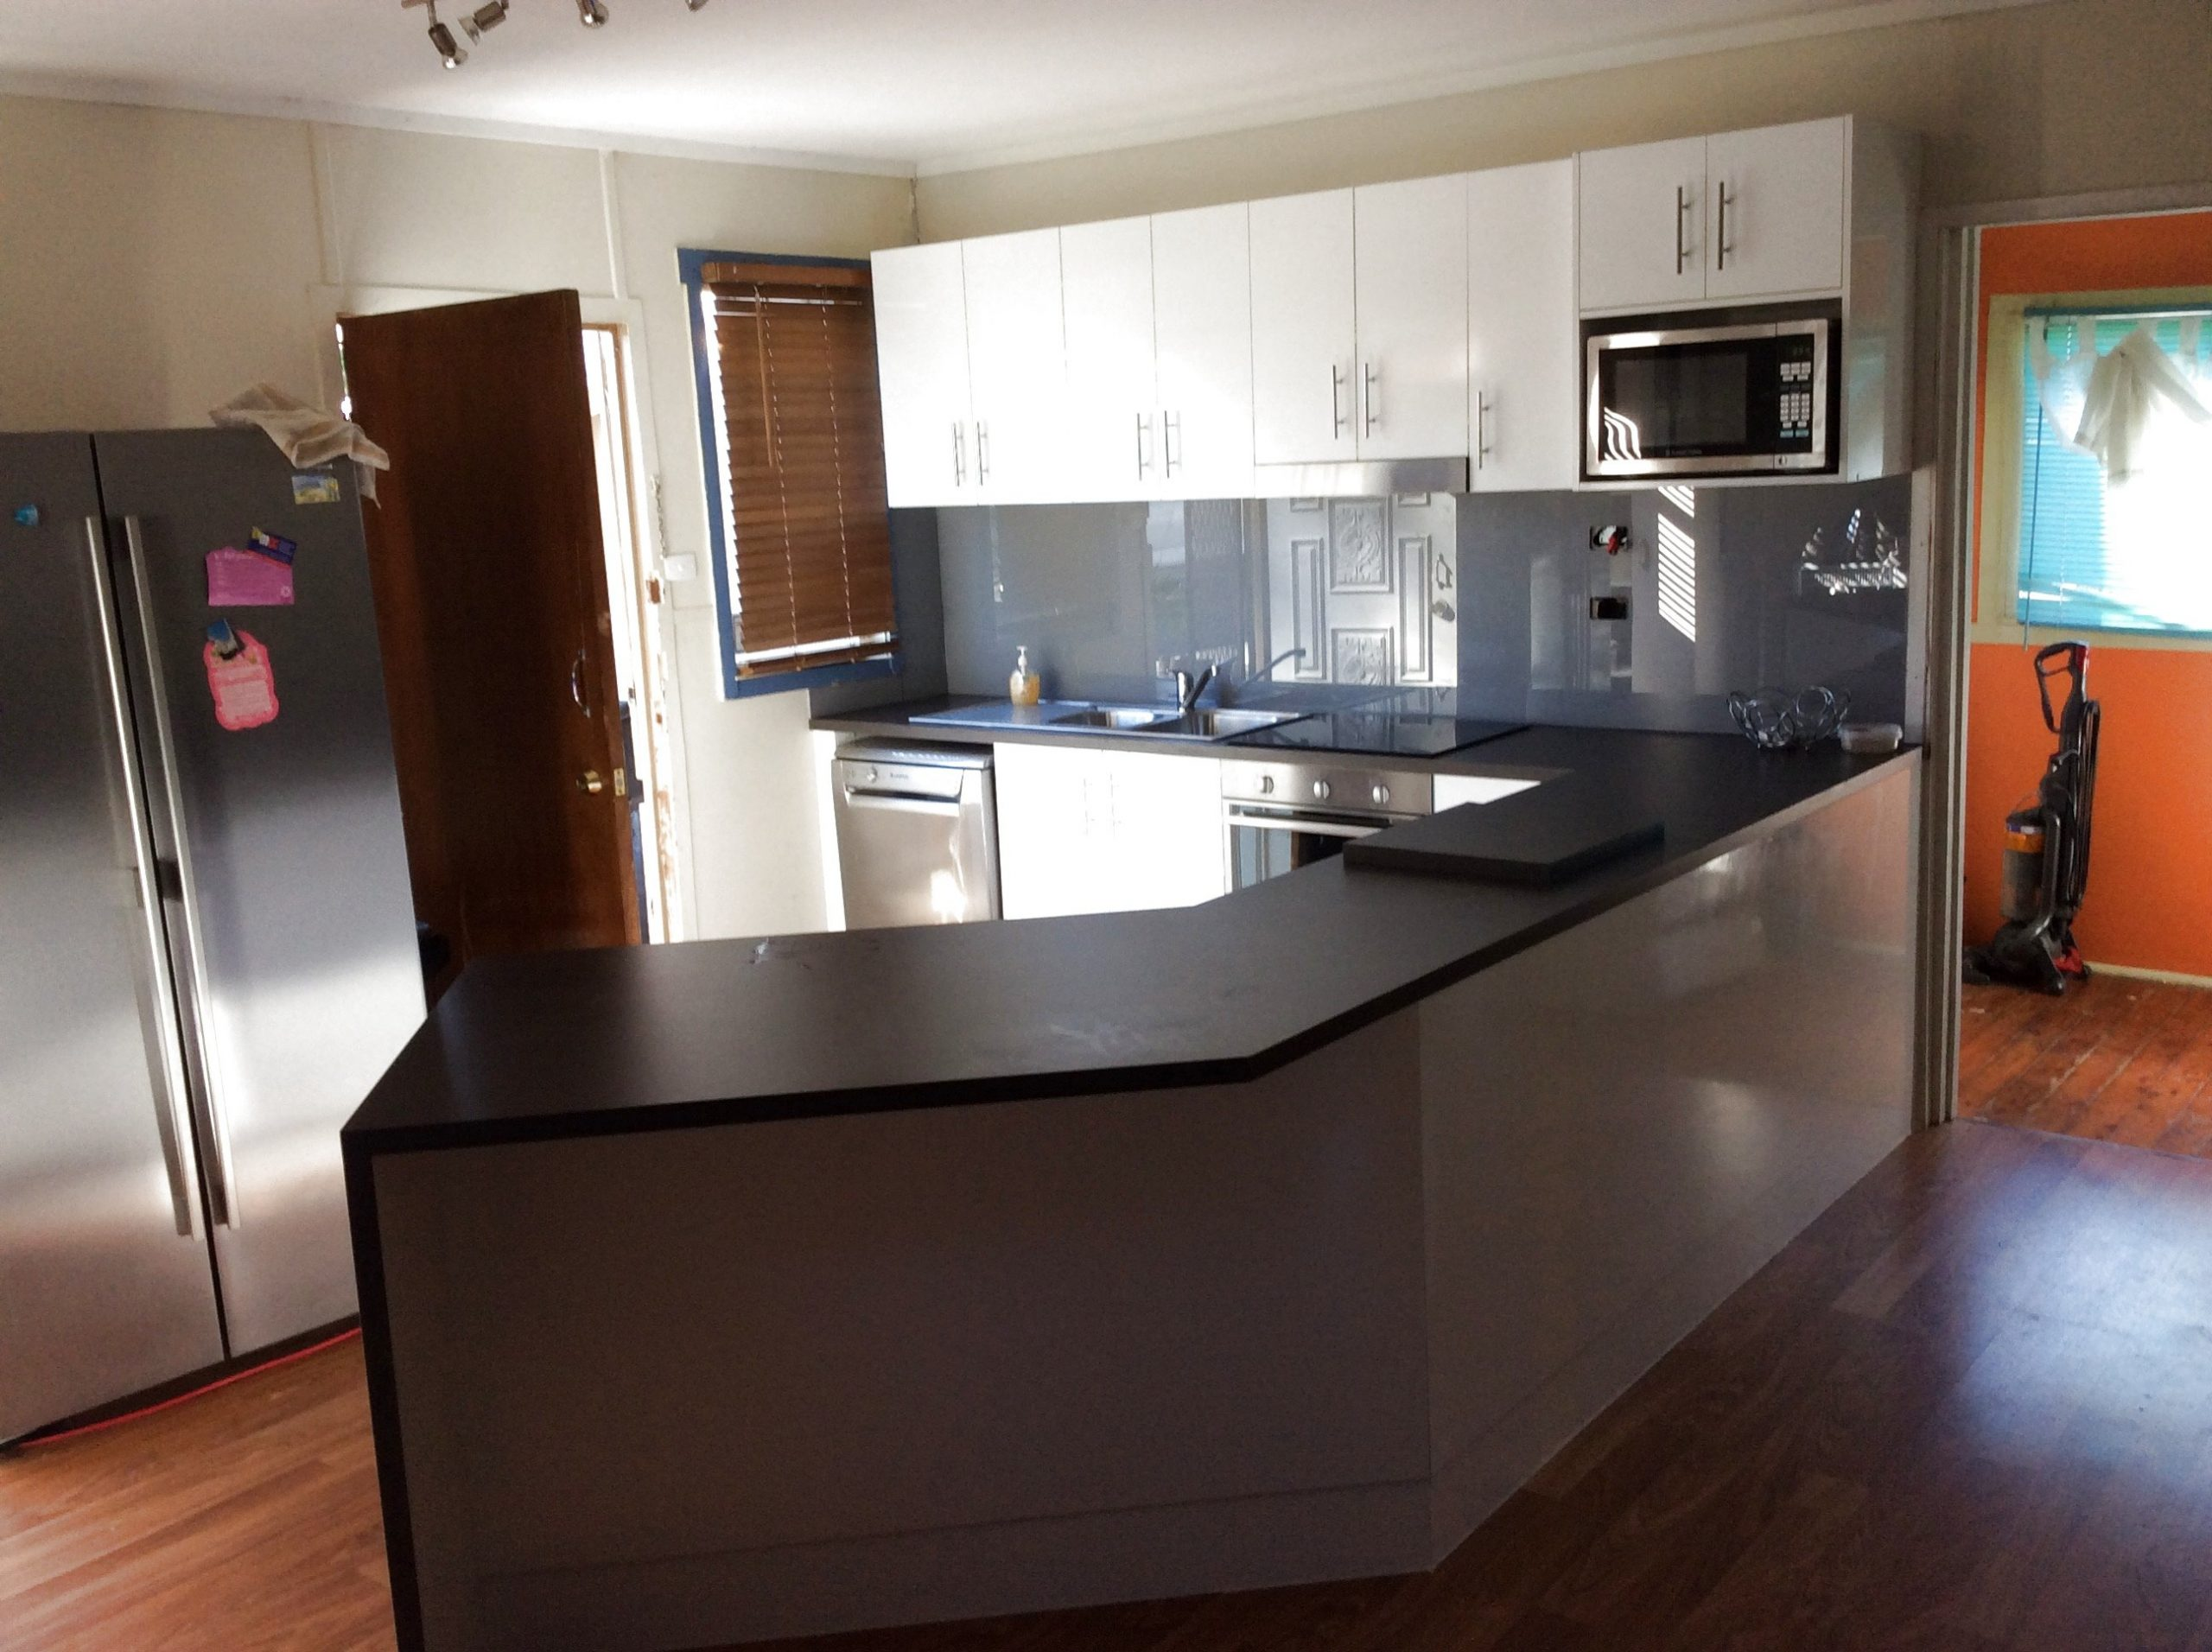 Polytec sheen doors with matte black bench tops and glass splash back